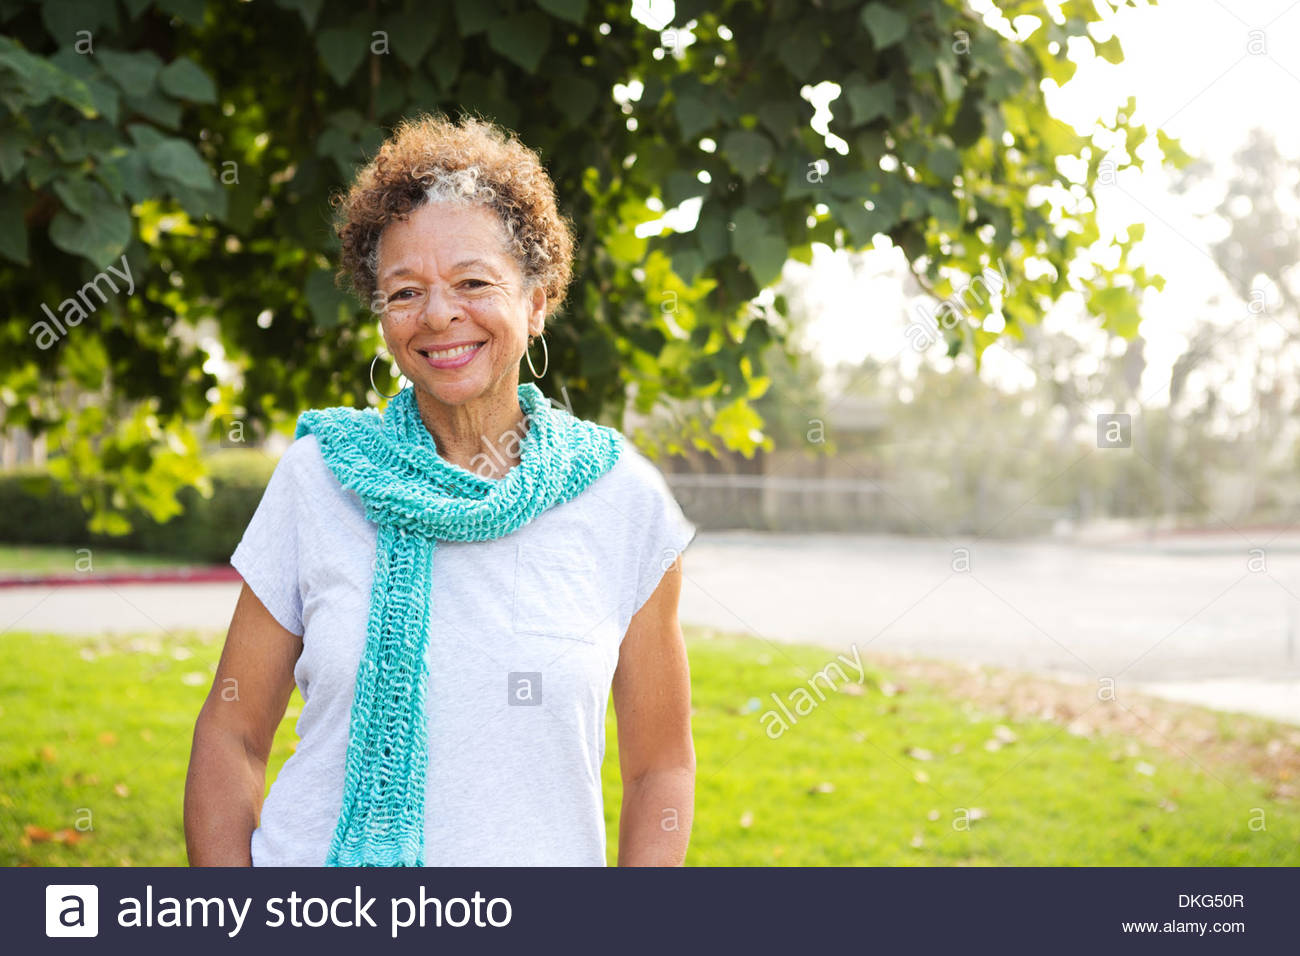 Portrait of senior woman wearing scarf in park - Stock Image